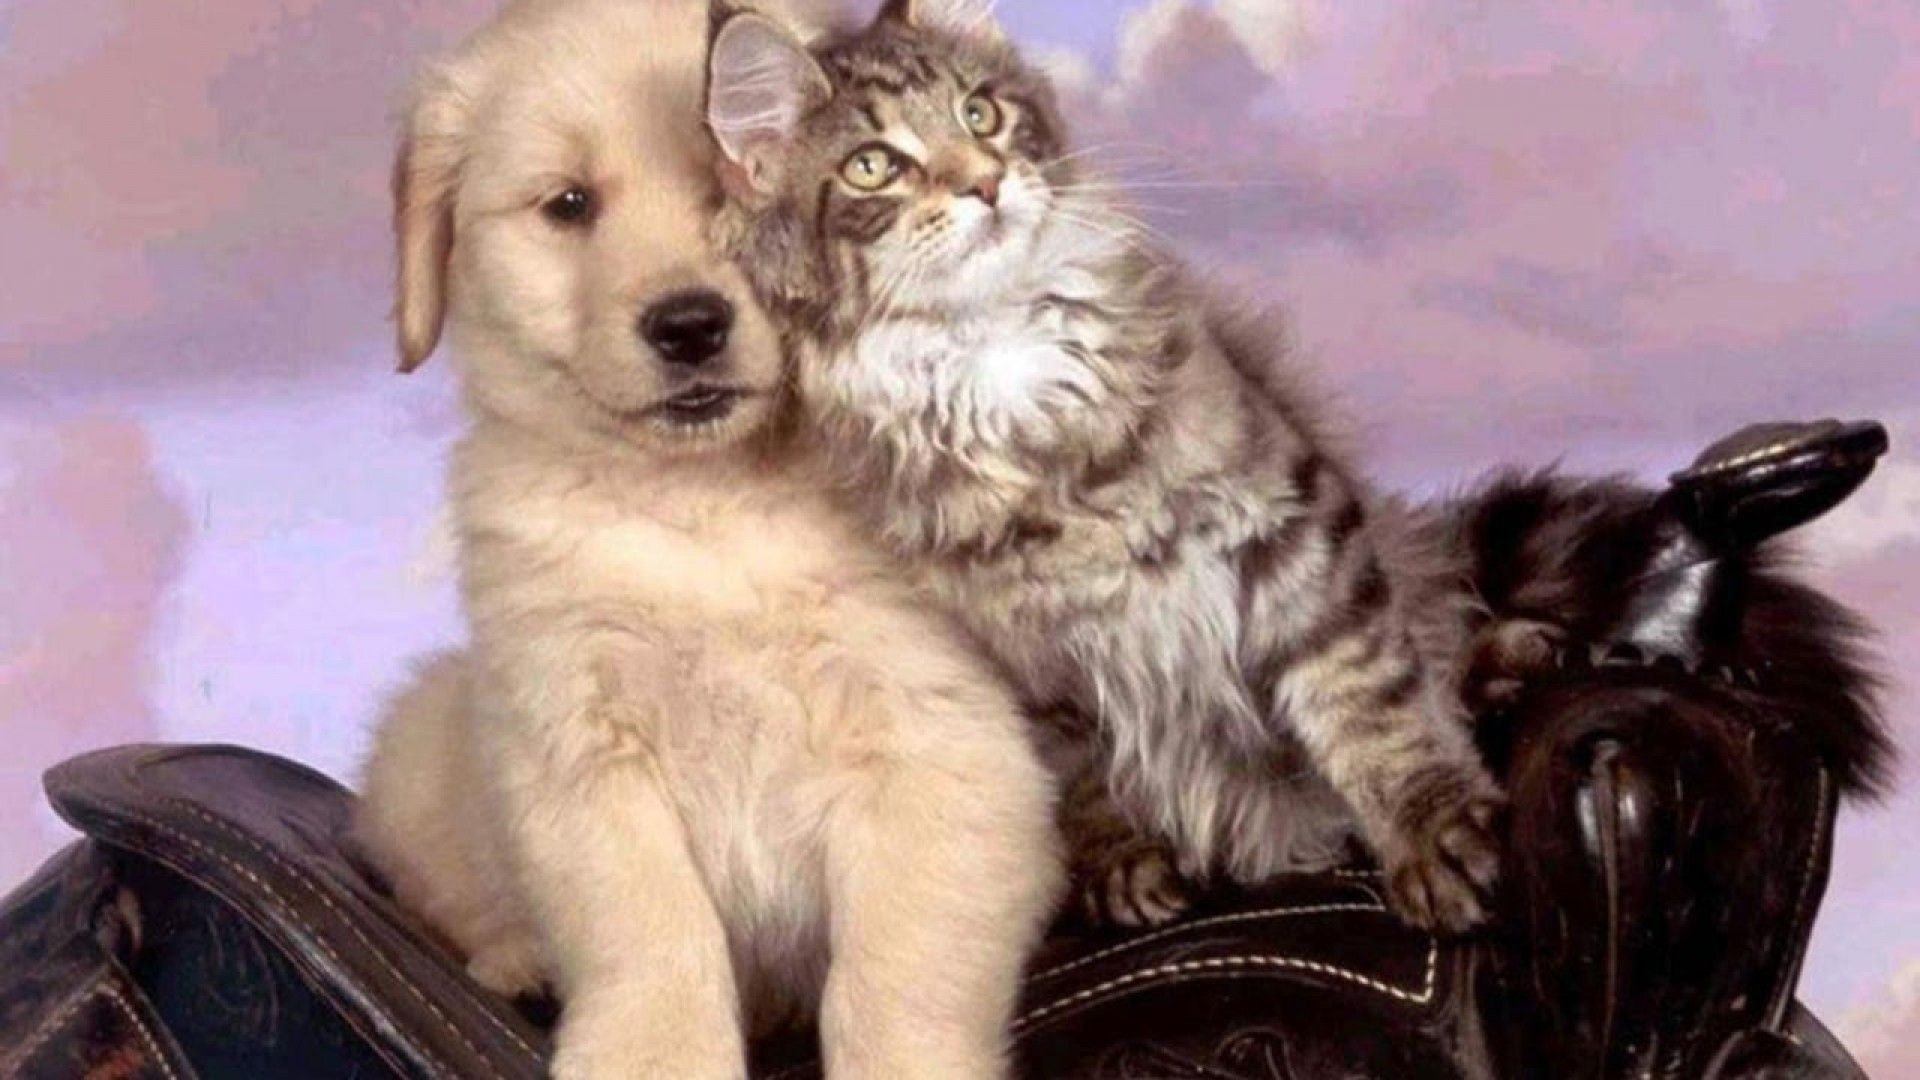 1920x1080 Cats Pet Love Animal Cat Puppy Kitten Dog Cats Animals Dogs .